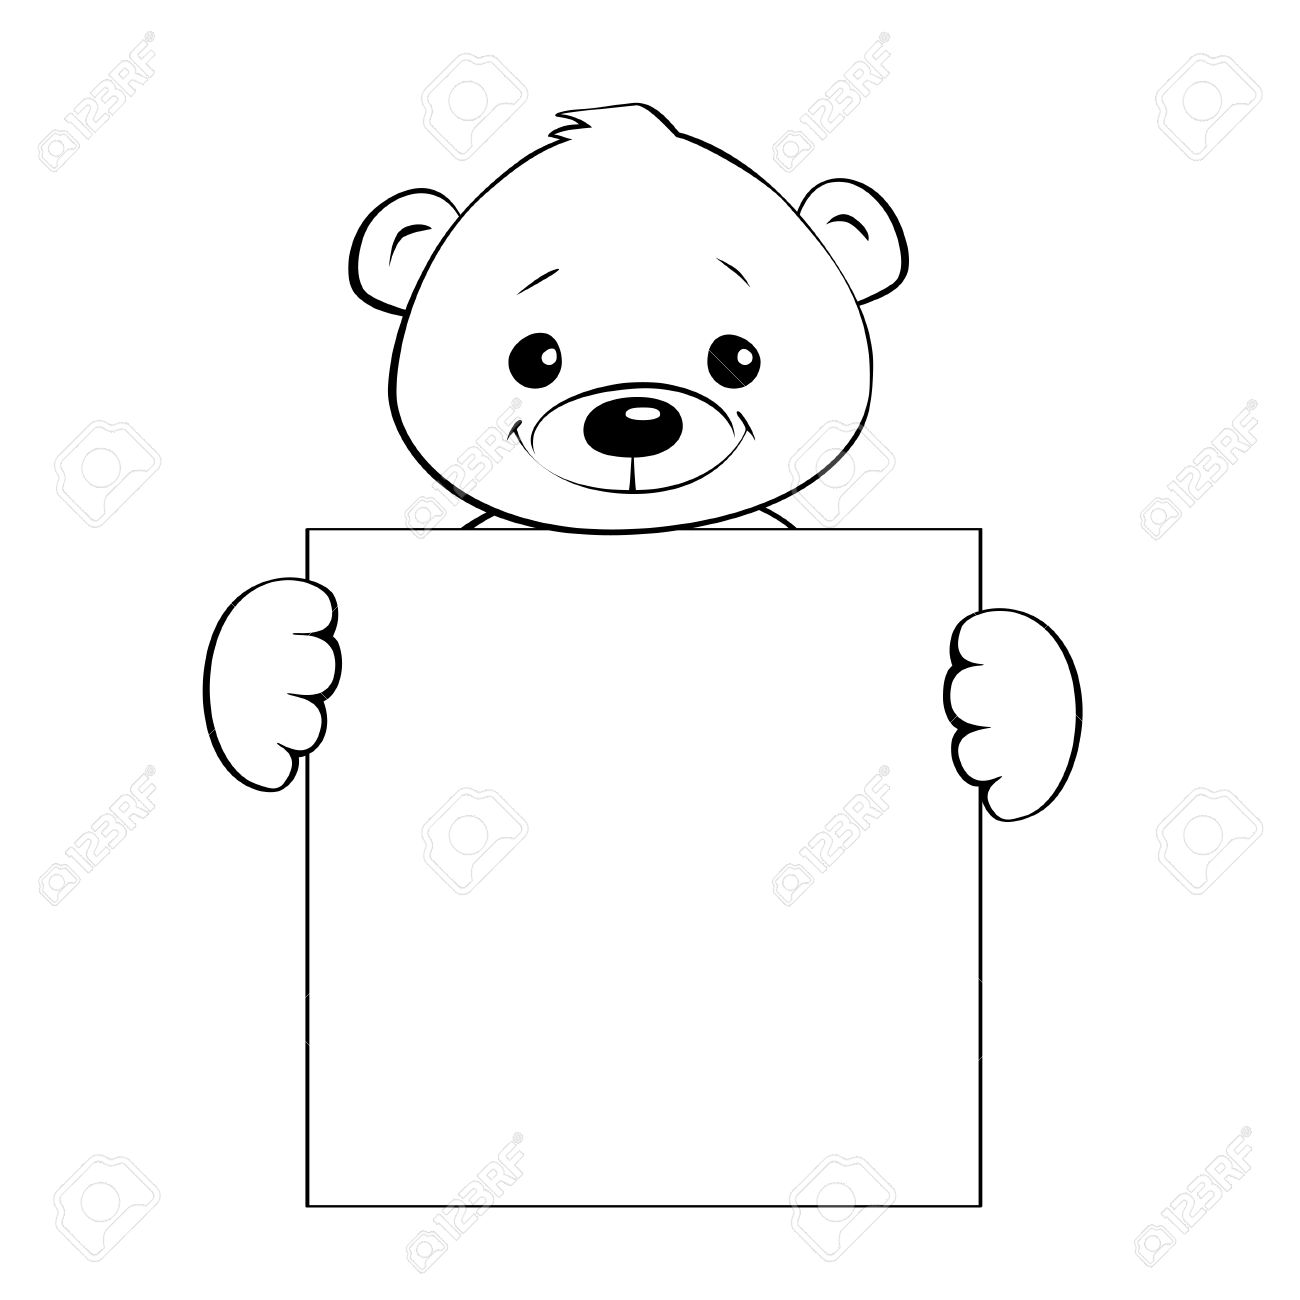 Black and white illustration of a cute cartoon teddy bear holding...